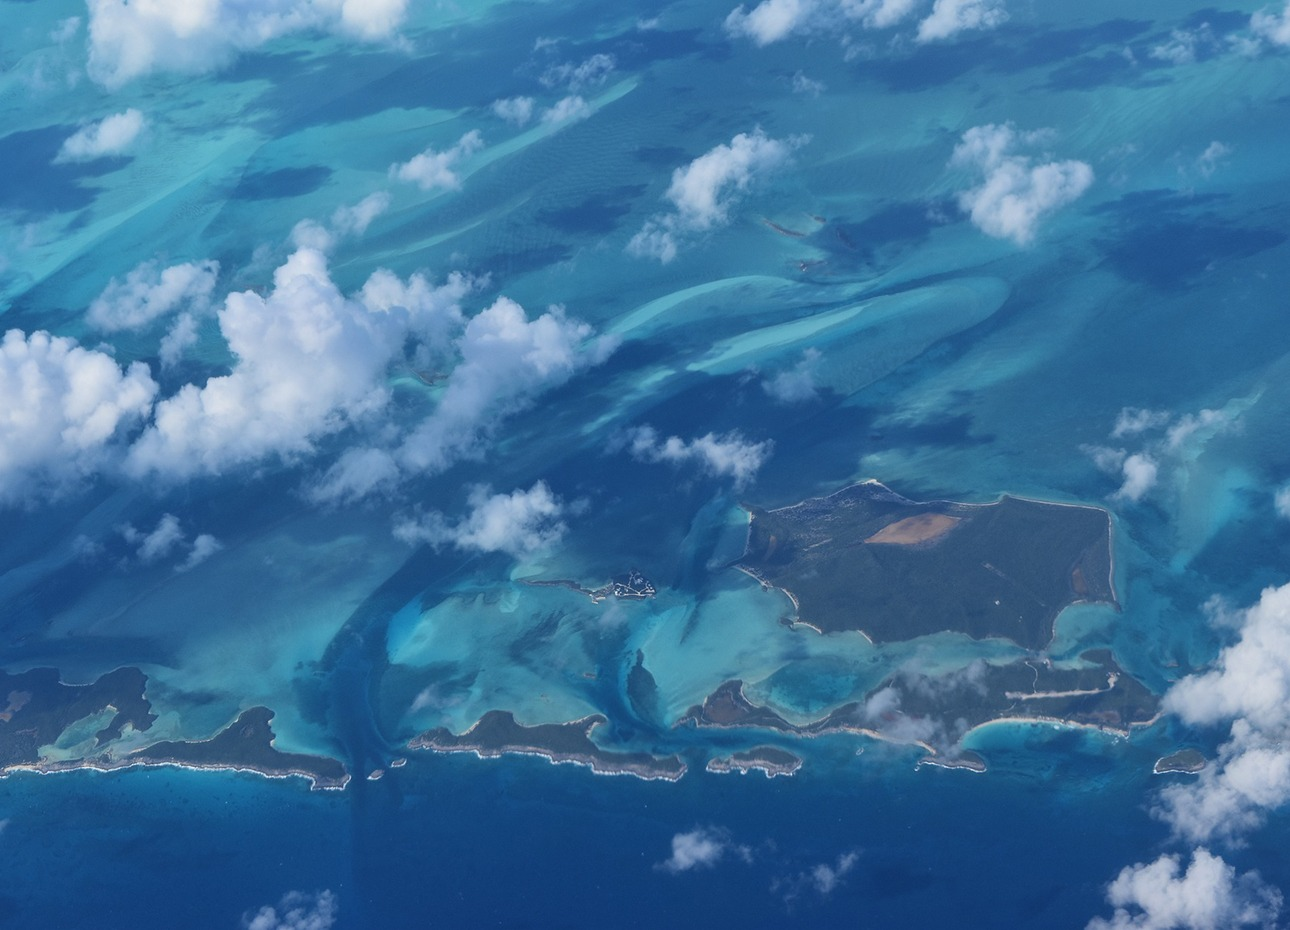 islands-in-the-bahamas-taken-through-the-clouds-from-a-plane